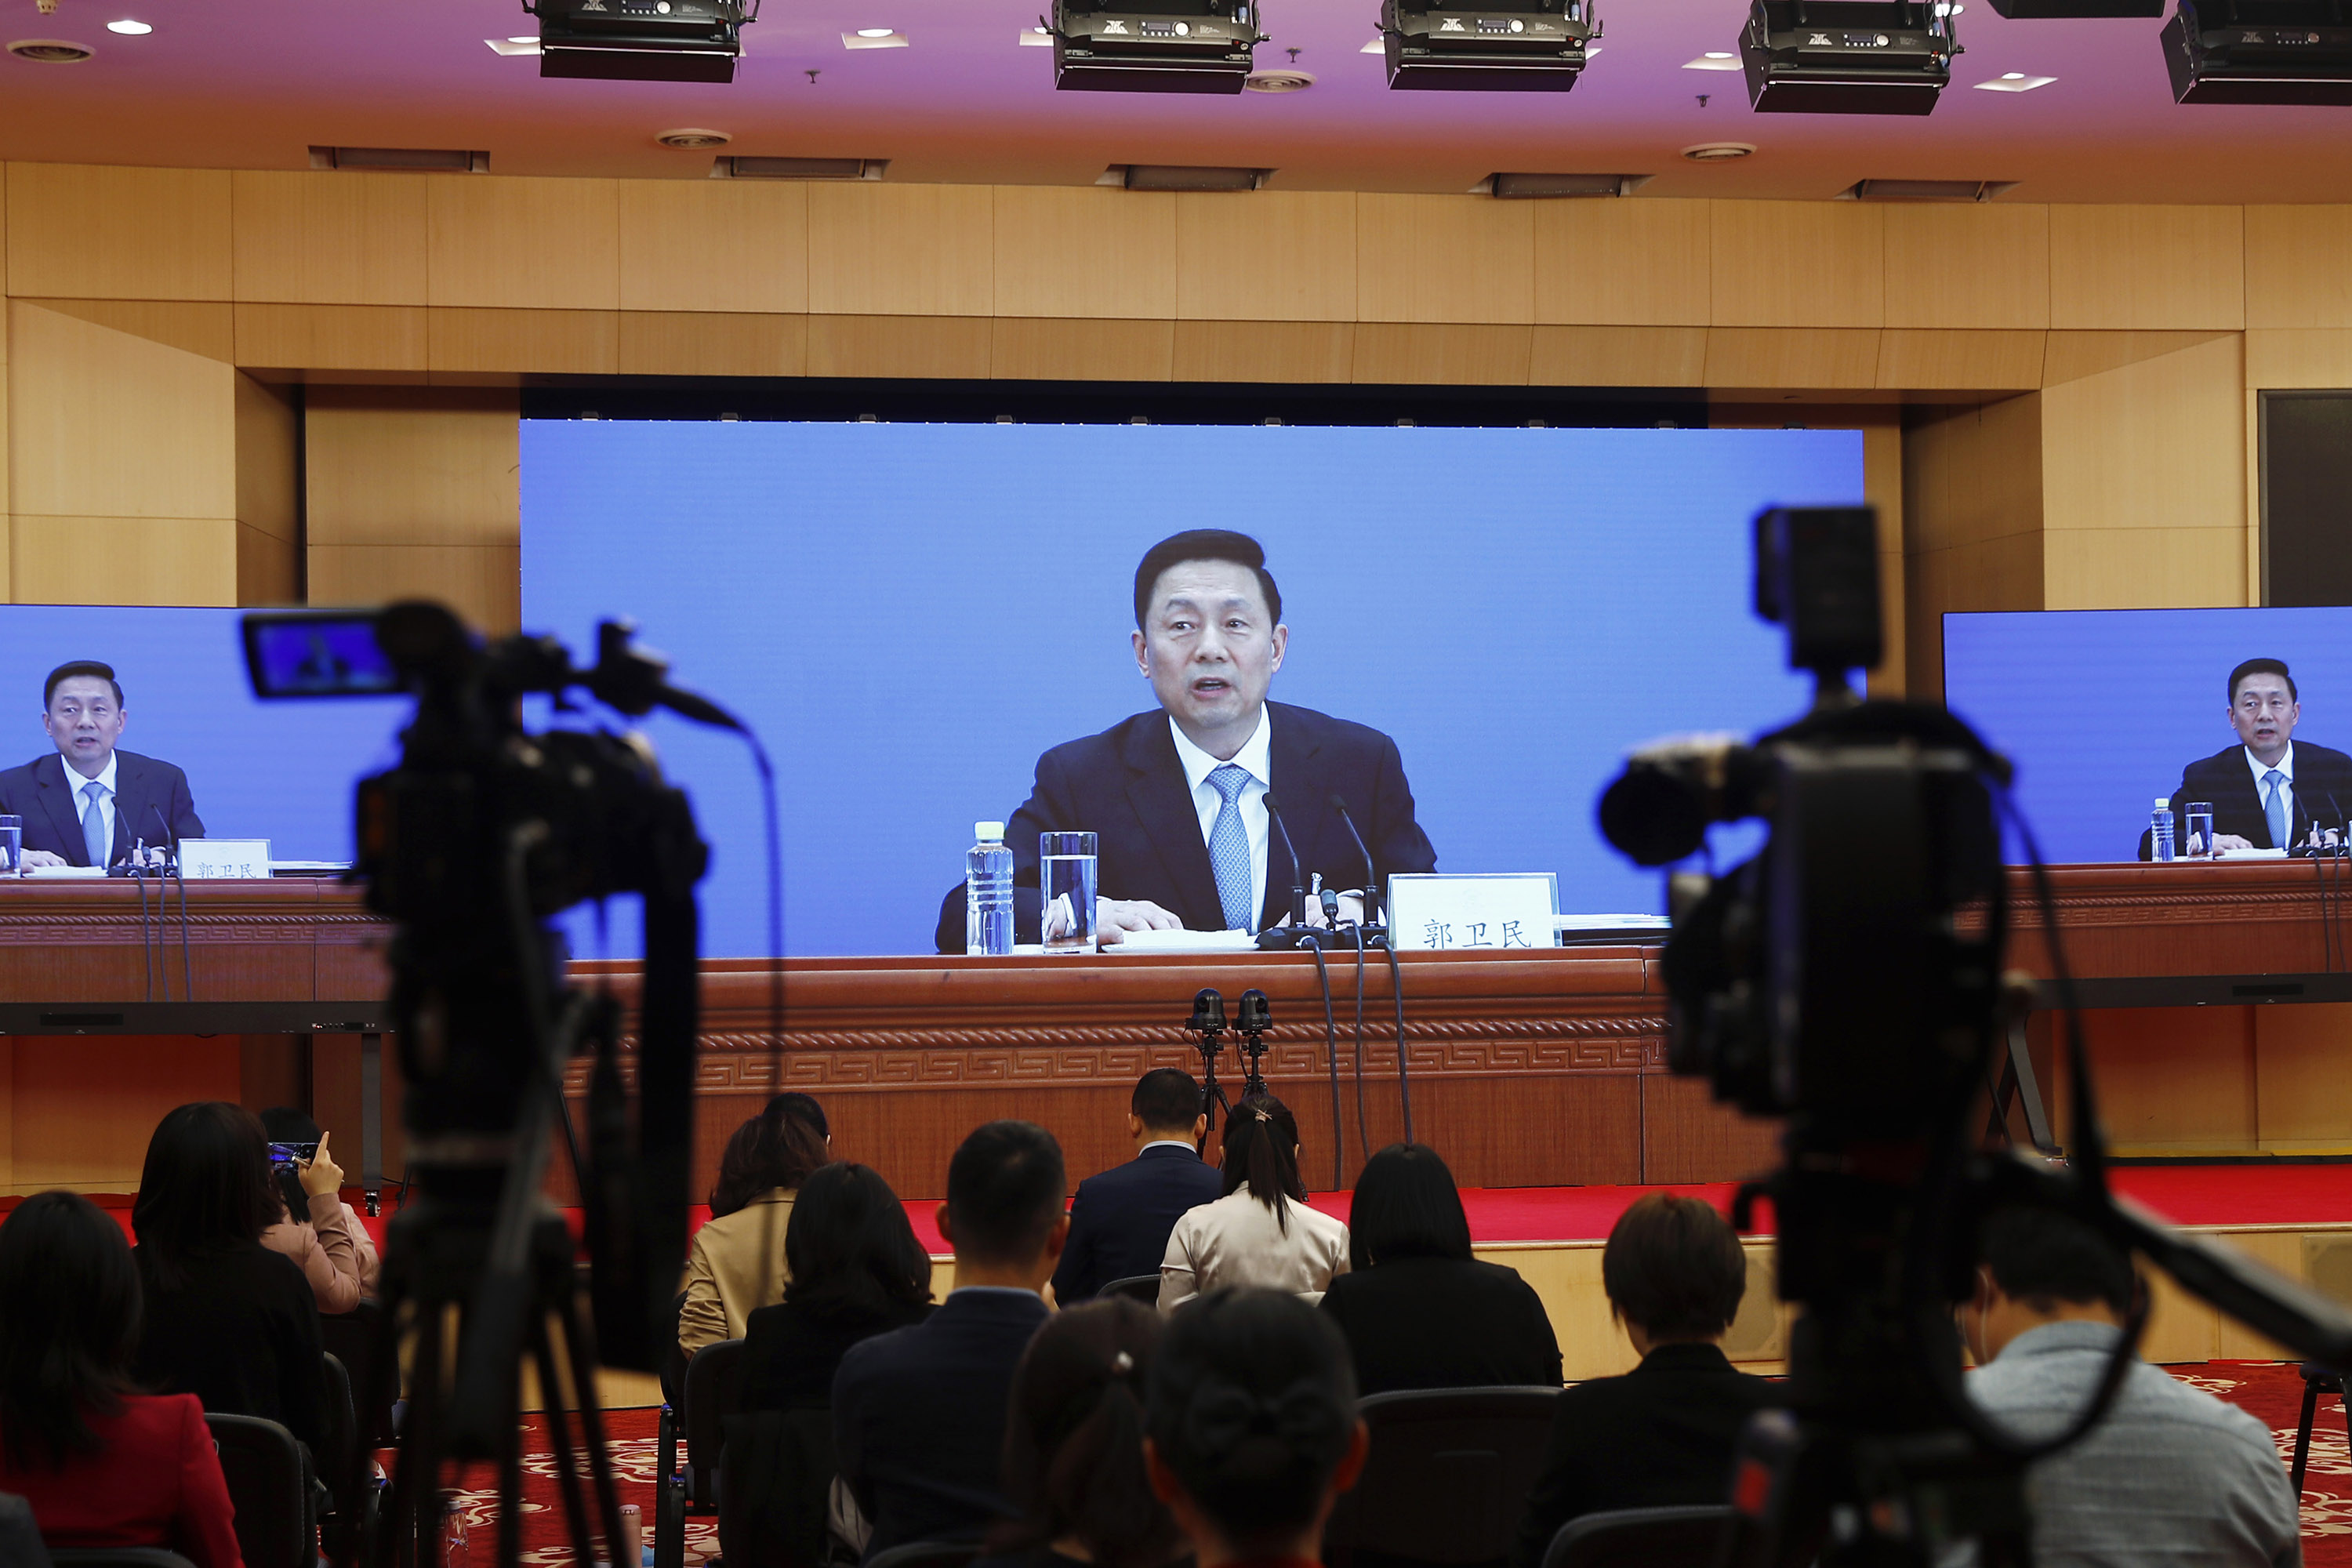 Guo Weimin, spokesman for the National Committee of the Chinese People's Political Consultative Conference (CPPCC), speaks via video at the media center in Beijing, on Wednesday, May 20.